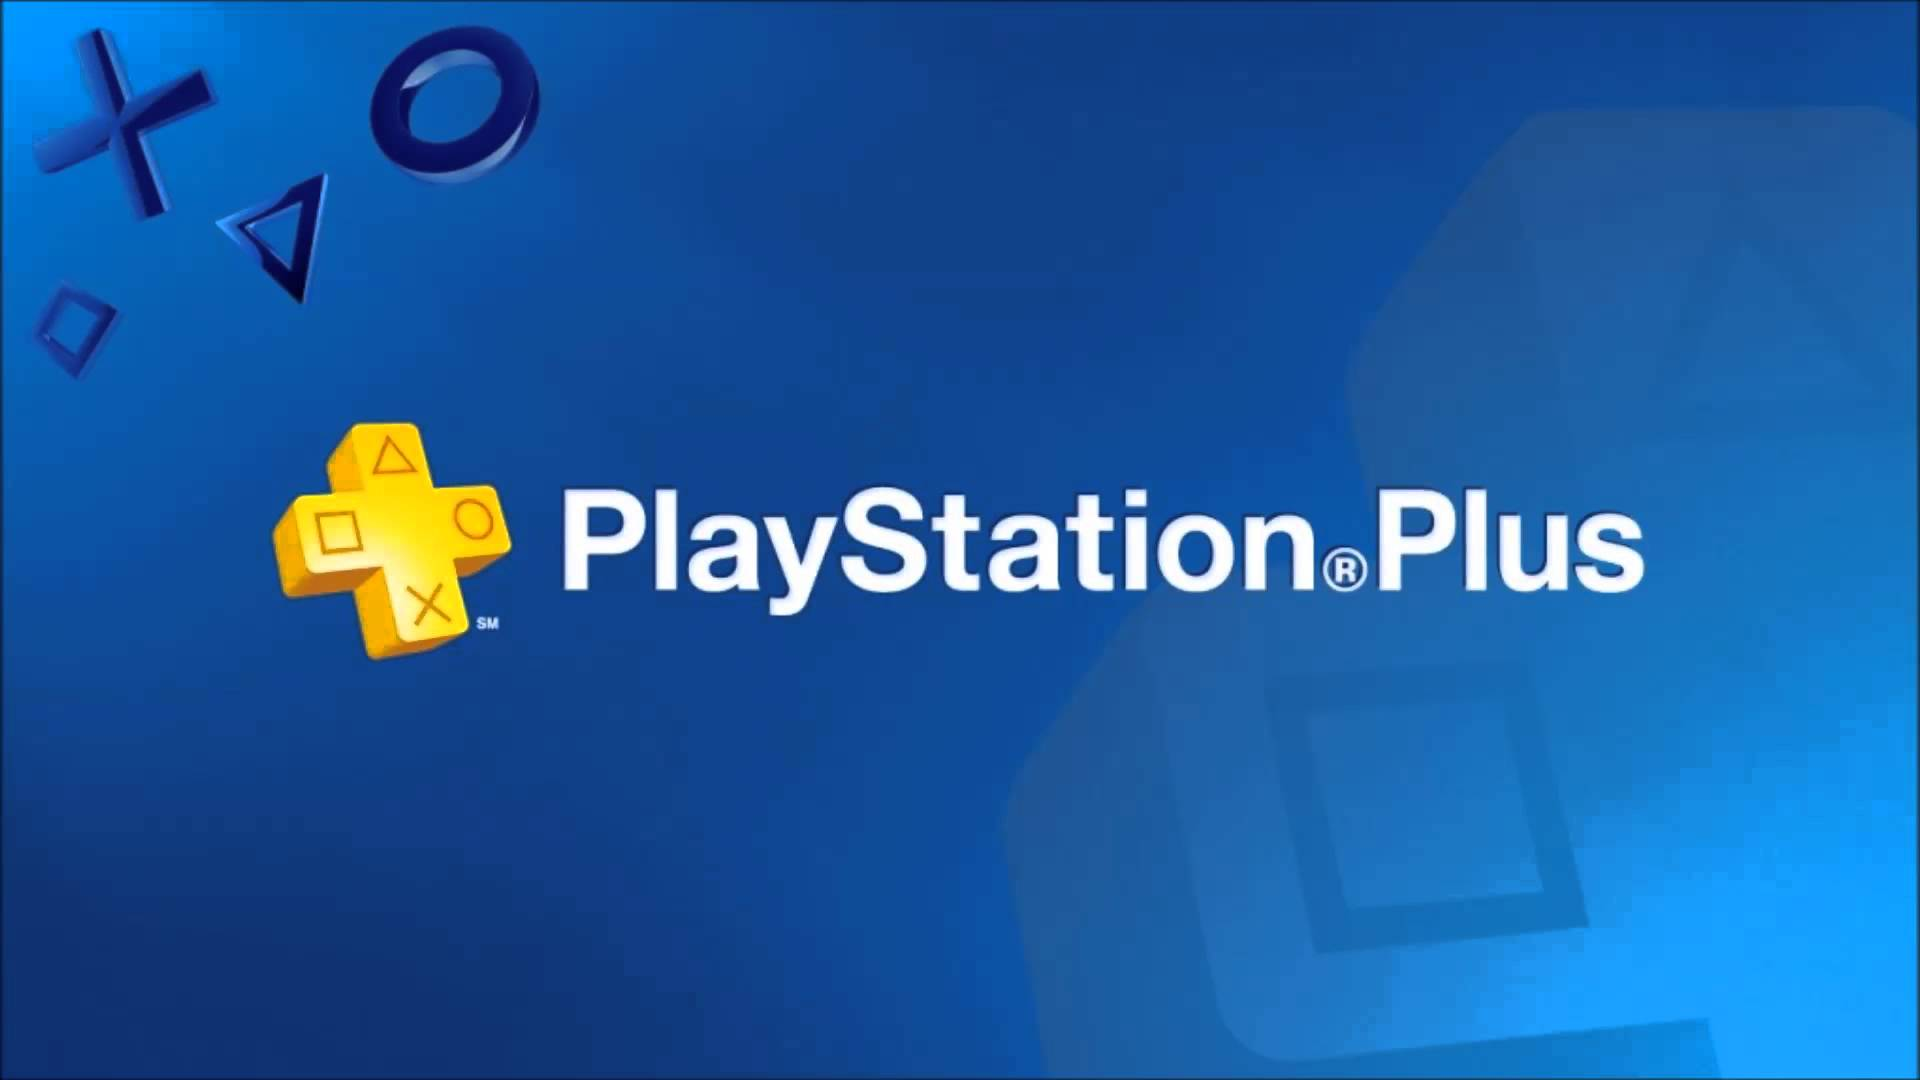 PlayStation Plus Free Games July 2020, PlayStation Plus Free Games July 2020 Announced, Sony Thanks Fans for 10 Years of PS Plus, MP1st, MP1st